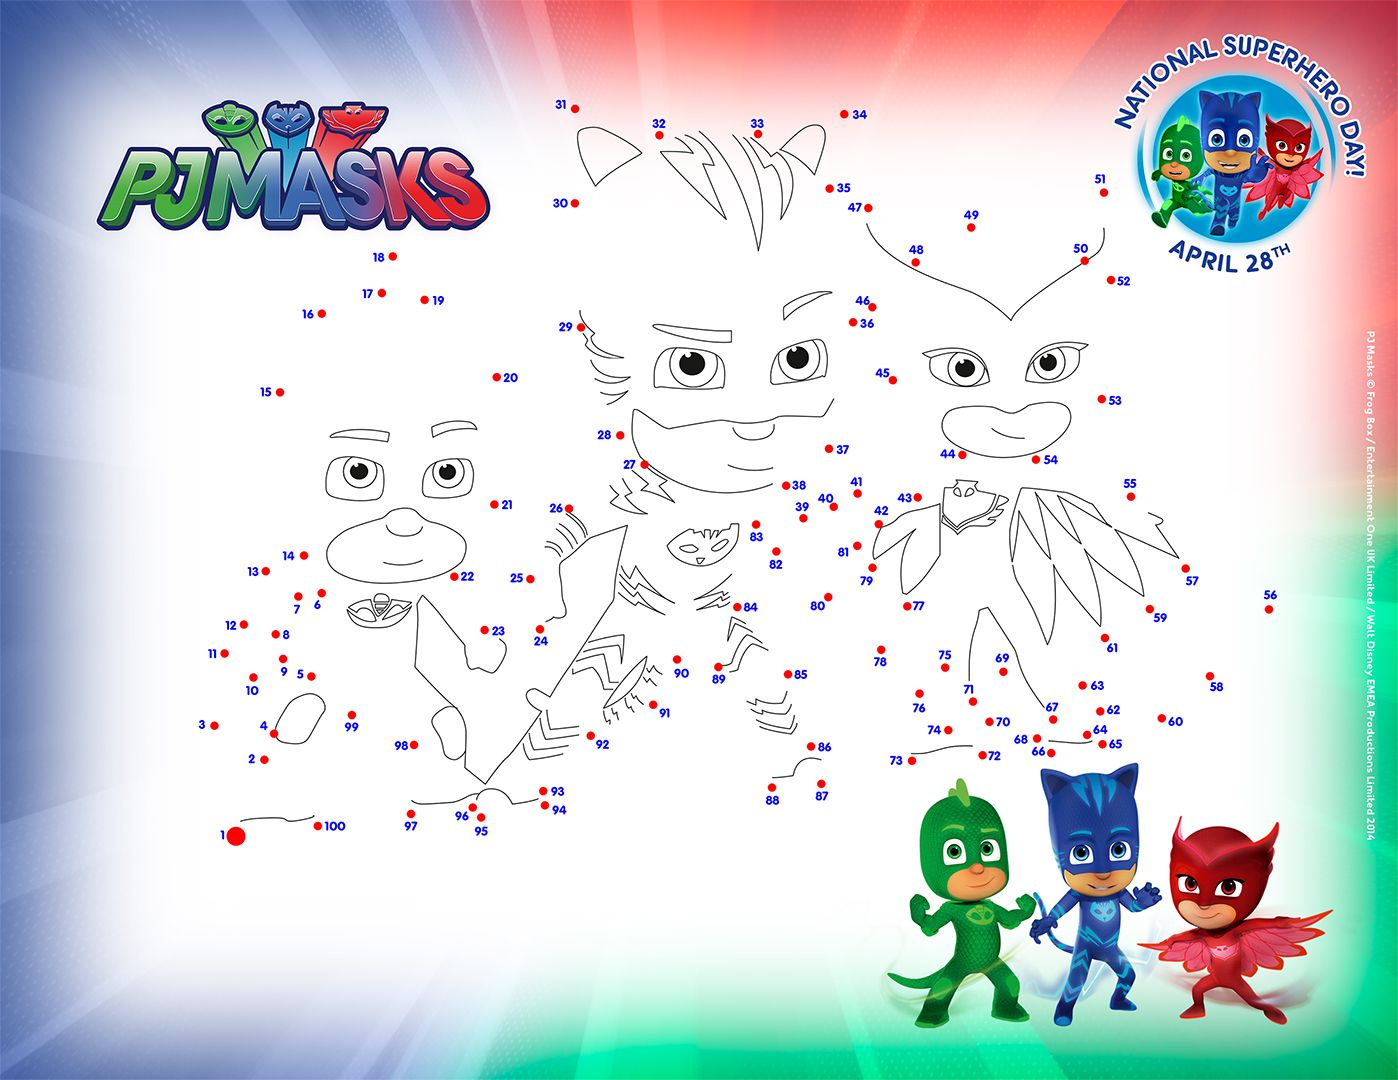 Pj masks coloring sheets printable - Pj Masks Connect The Dots Activity Page Get Ready For National Super Hero Day With Some Pj Masks Fun